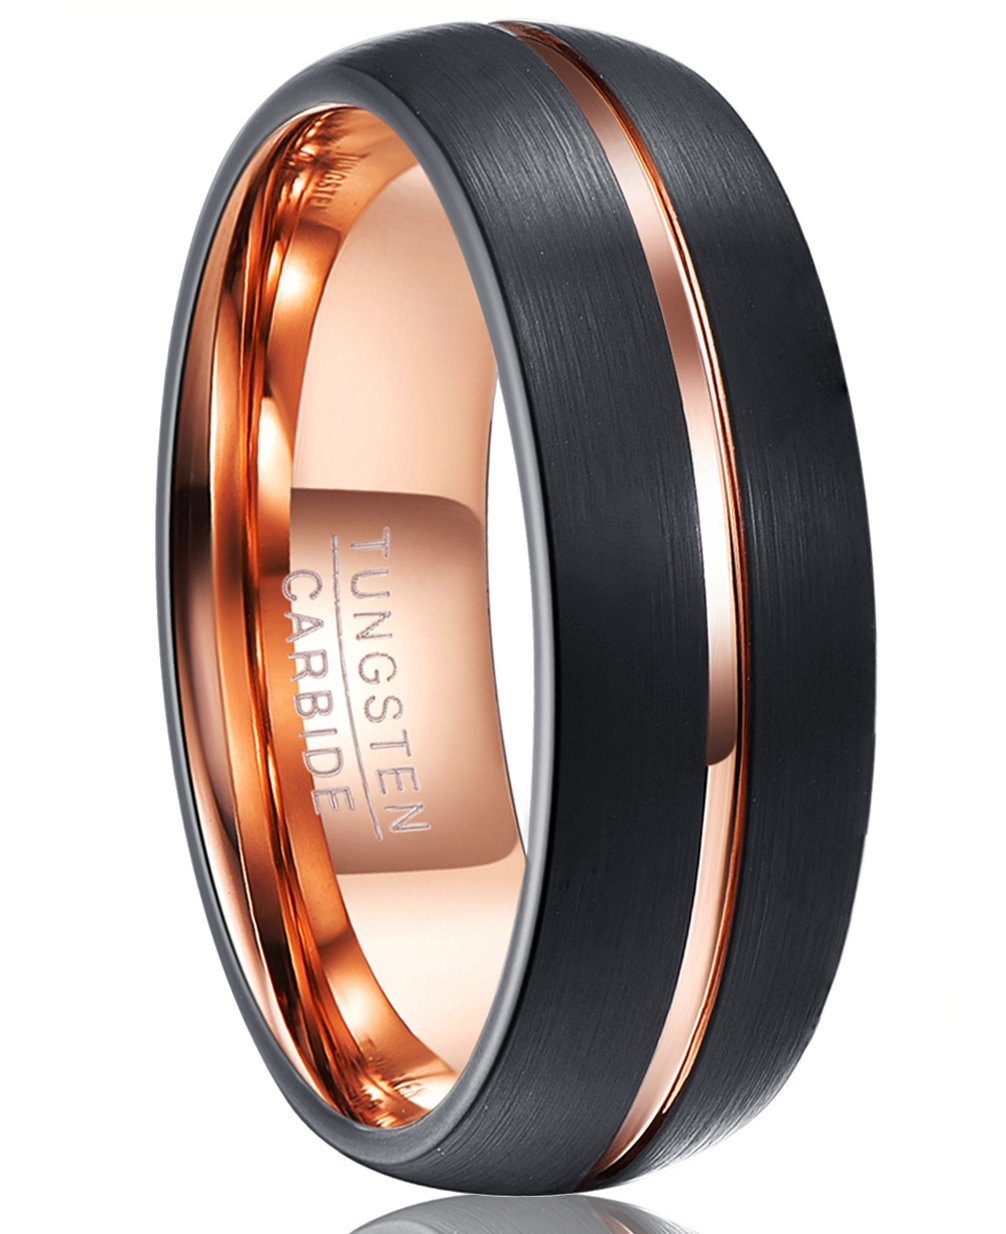 Nuncad 8mm Tungsten Carbide Wedding Band with Groove Black Tungsten Rings Rose Gold Plated Size 9